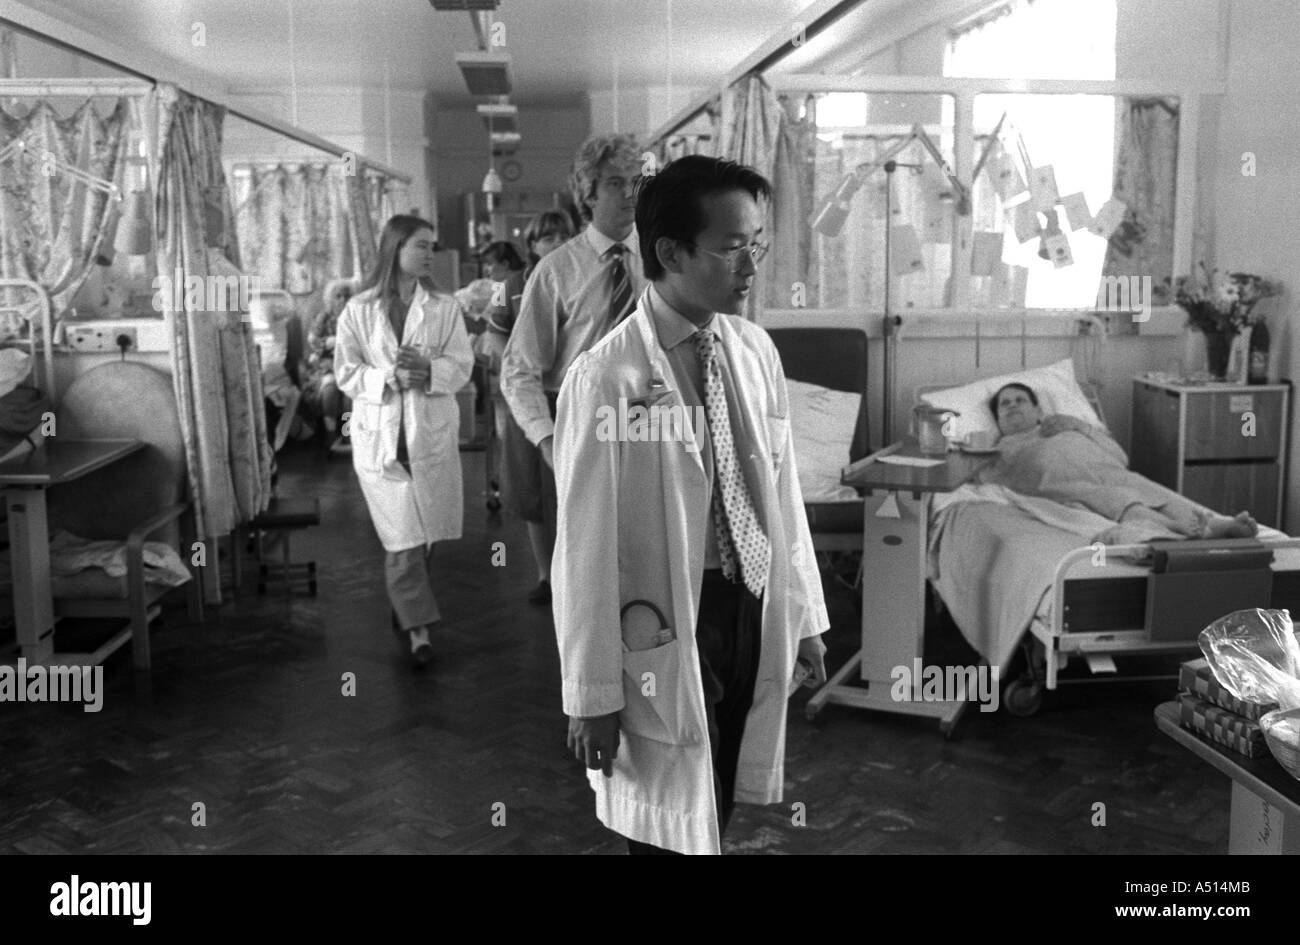 A Junior Doctor touring a hospital ward with colleagues and a senior doctor, Whipps Cross Hospital, London, UK. - Stock Image